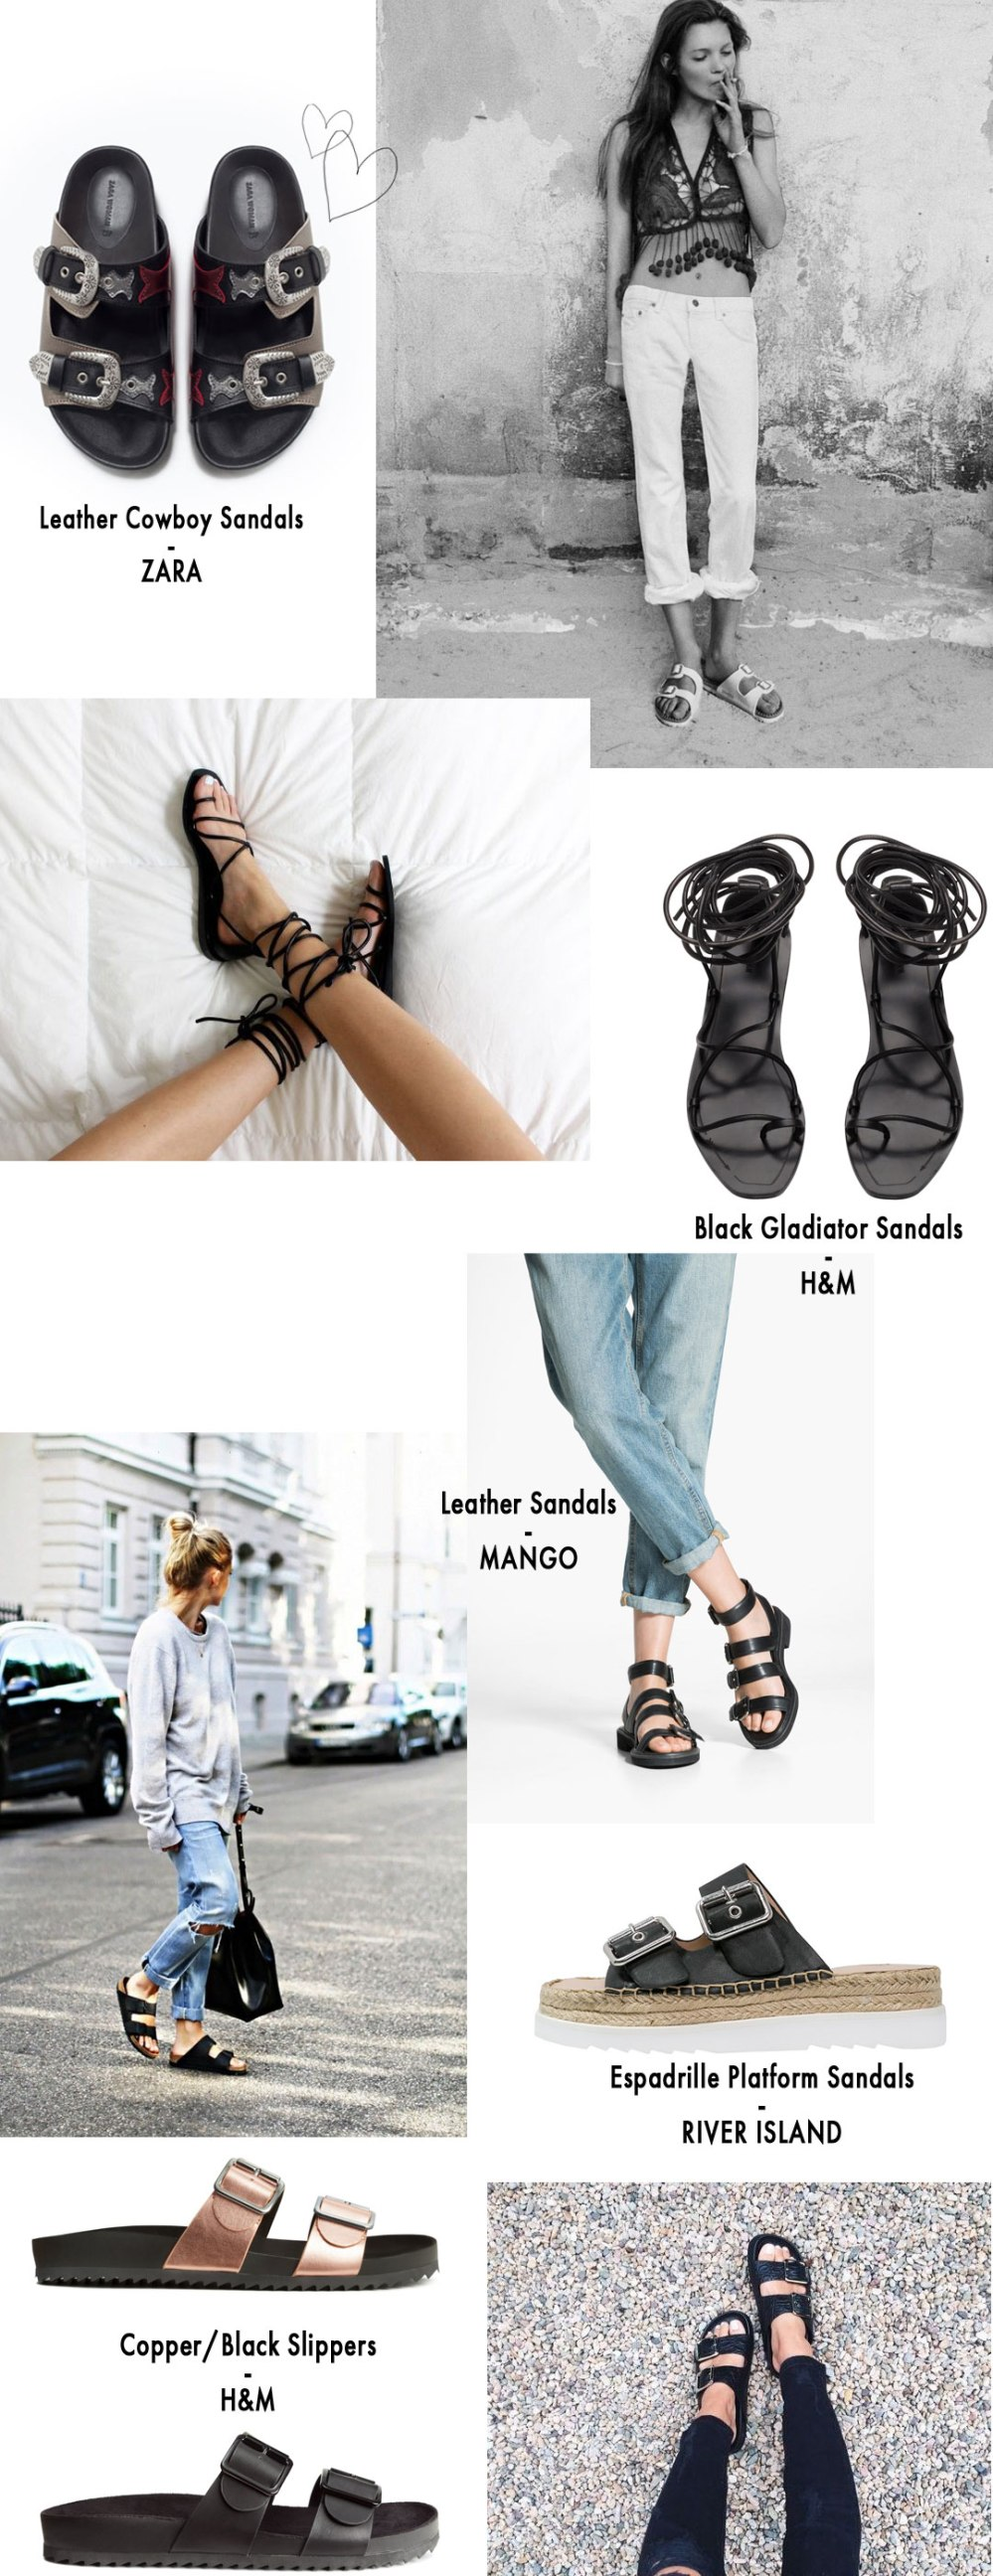 Soophisticated_Sandals